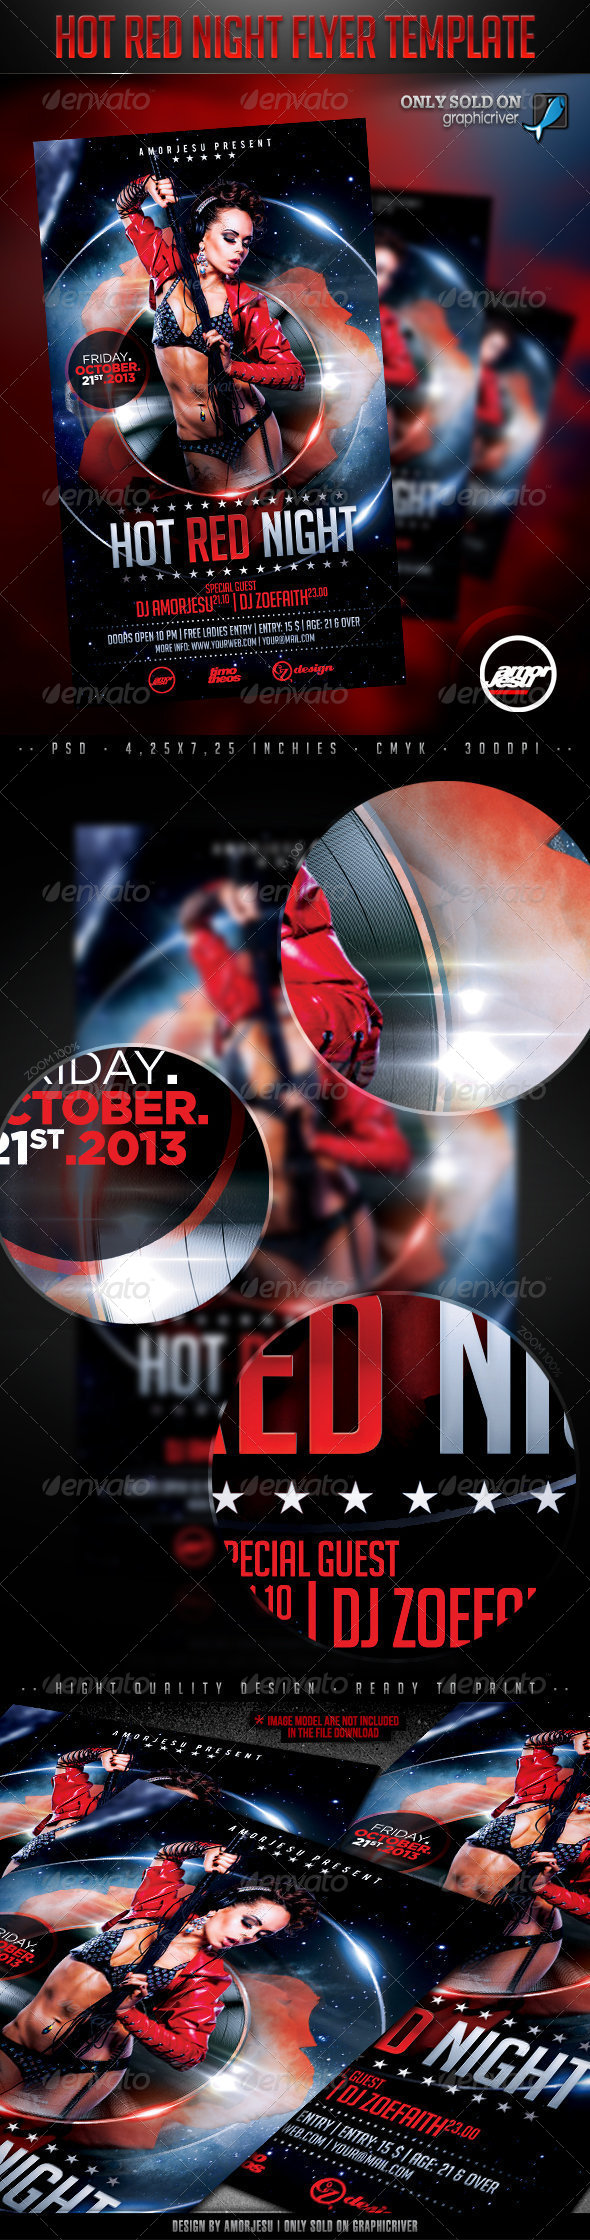 Hot Red Night Flyer Template - Clubs & Parties Events